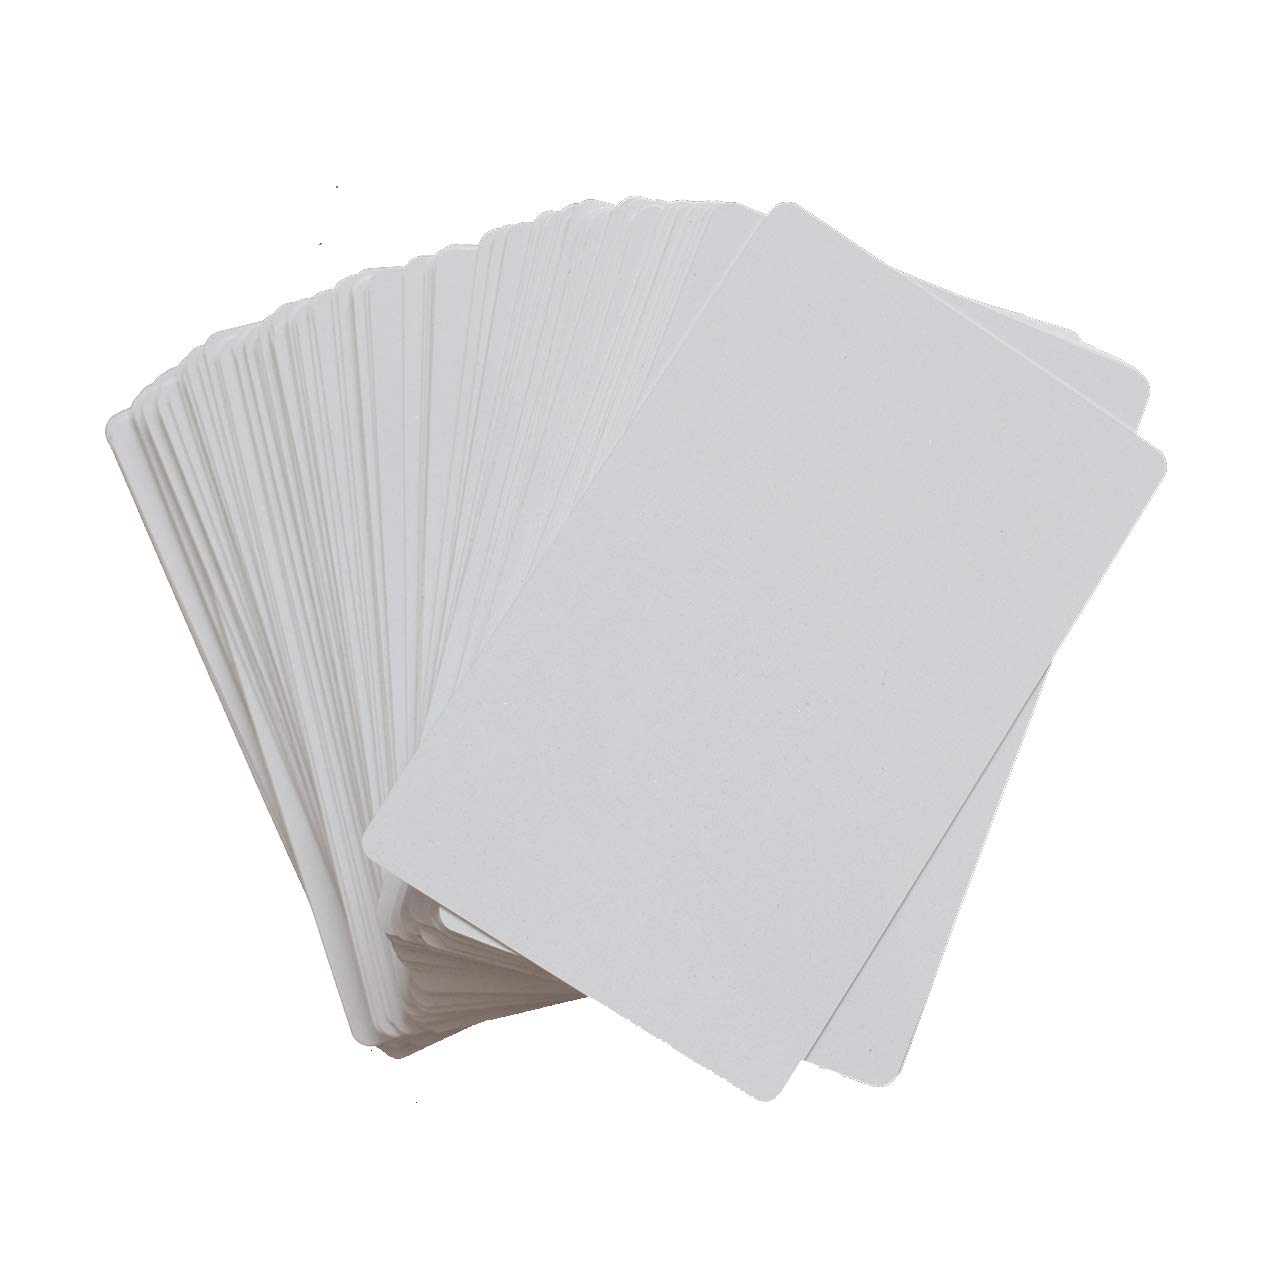 100pcs Sublimation Metal Business Cards Laser Engraved Metal Business Cards Sublimation Blanks 3.4x2.1in Thicknes (0.30mm) (White) by world-paper (Image #1)